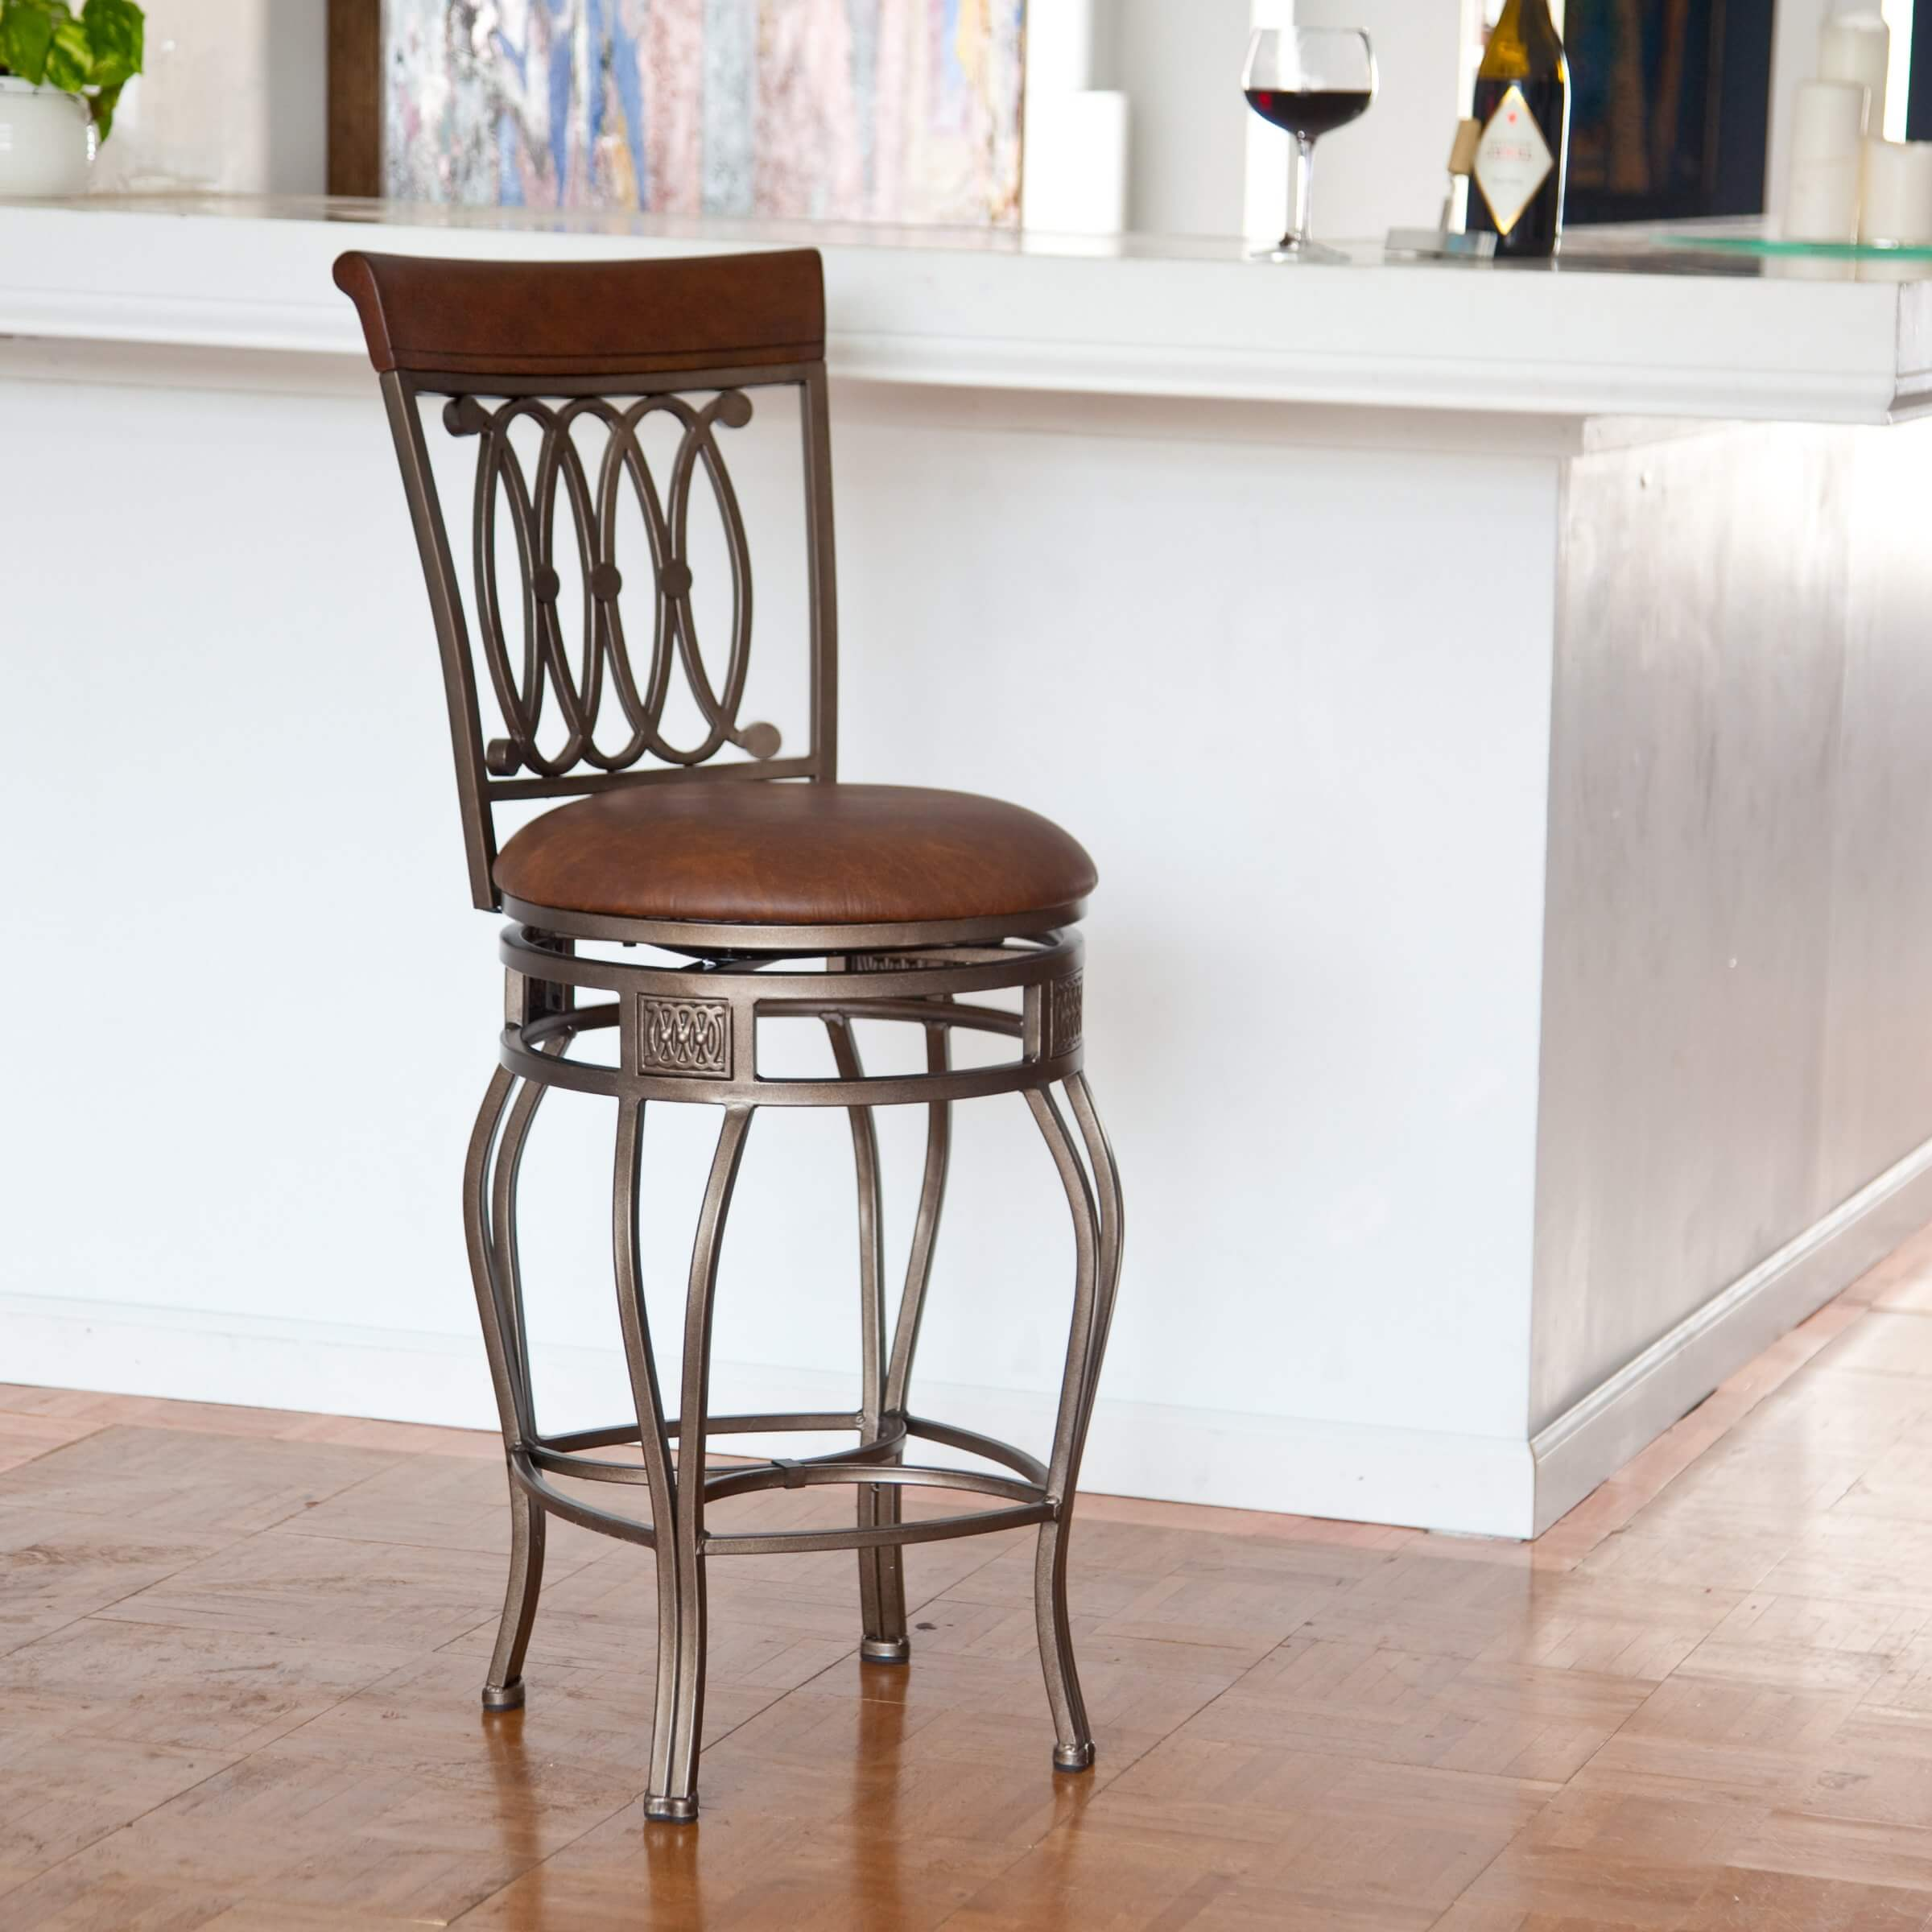 Example of standard counter height stool.